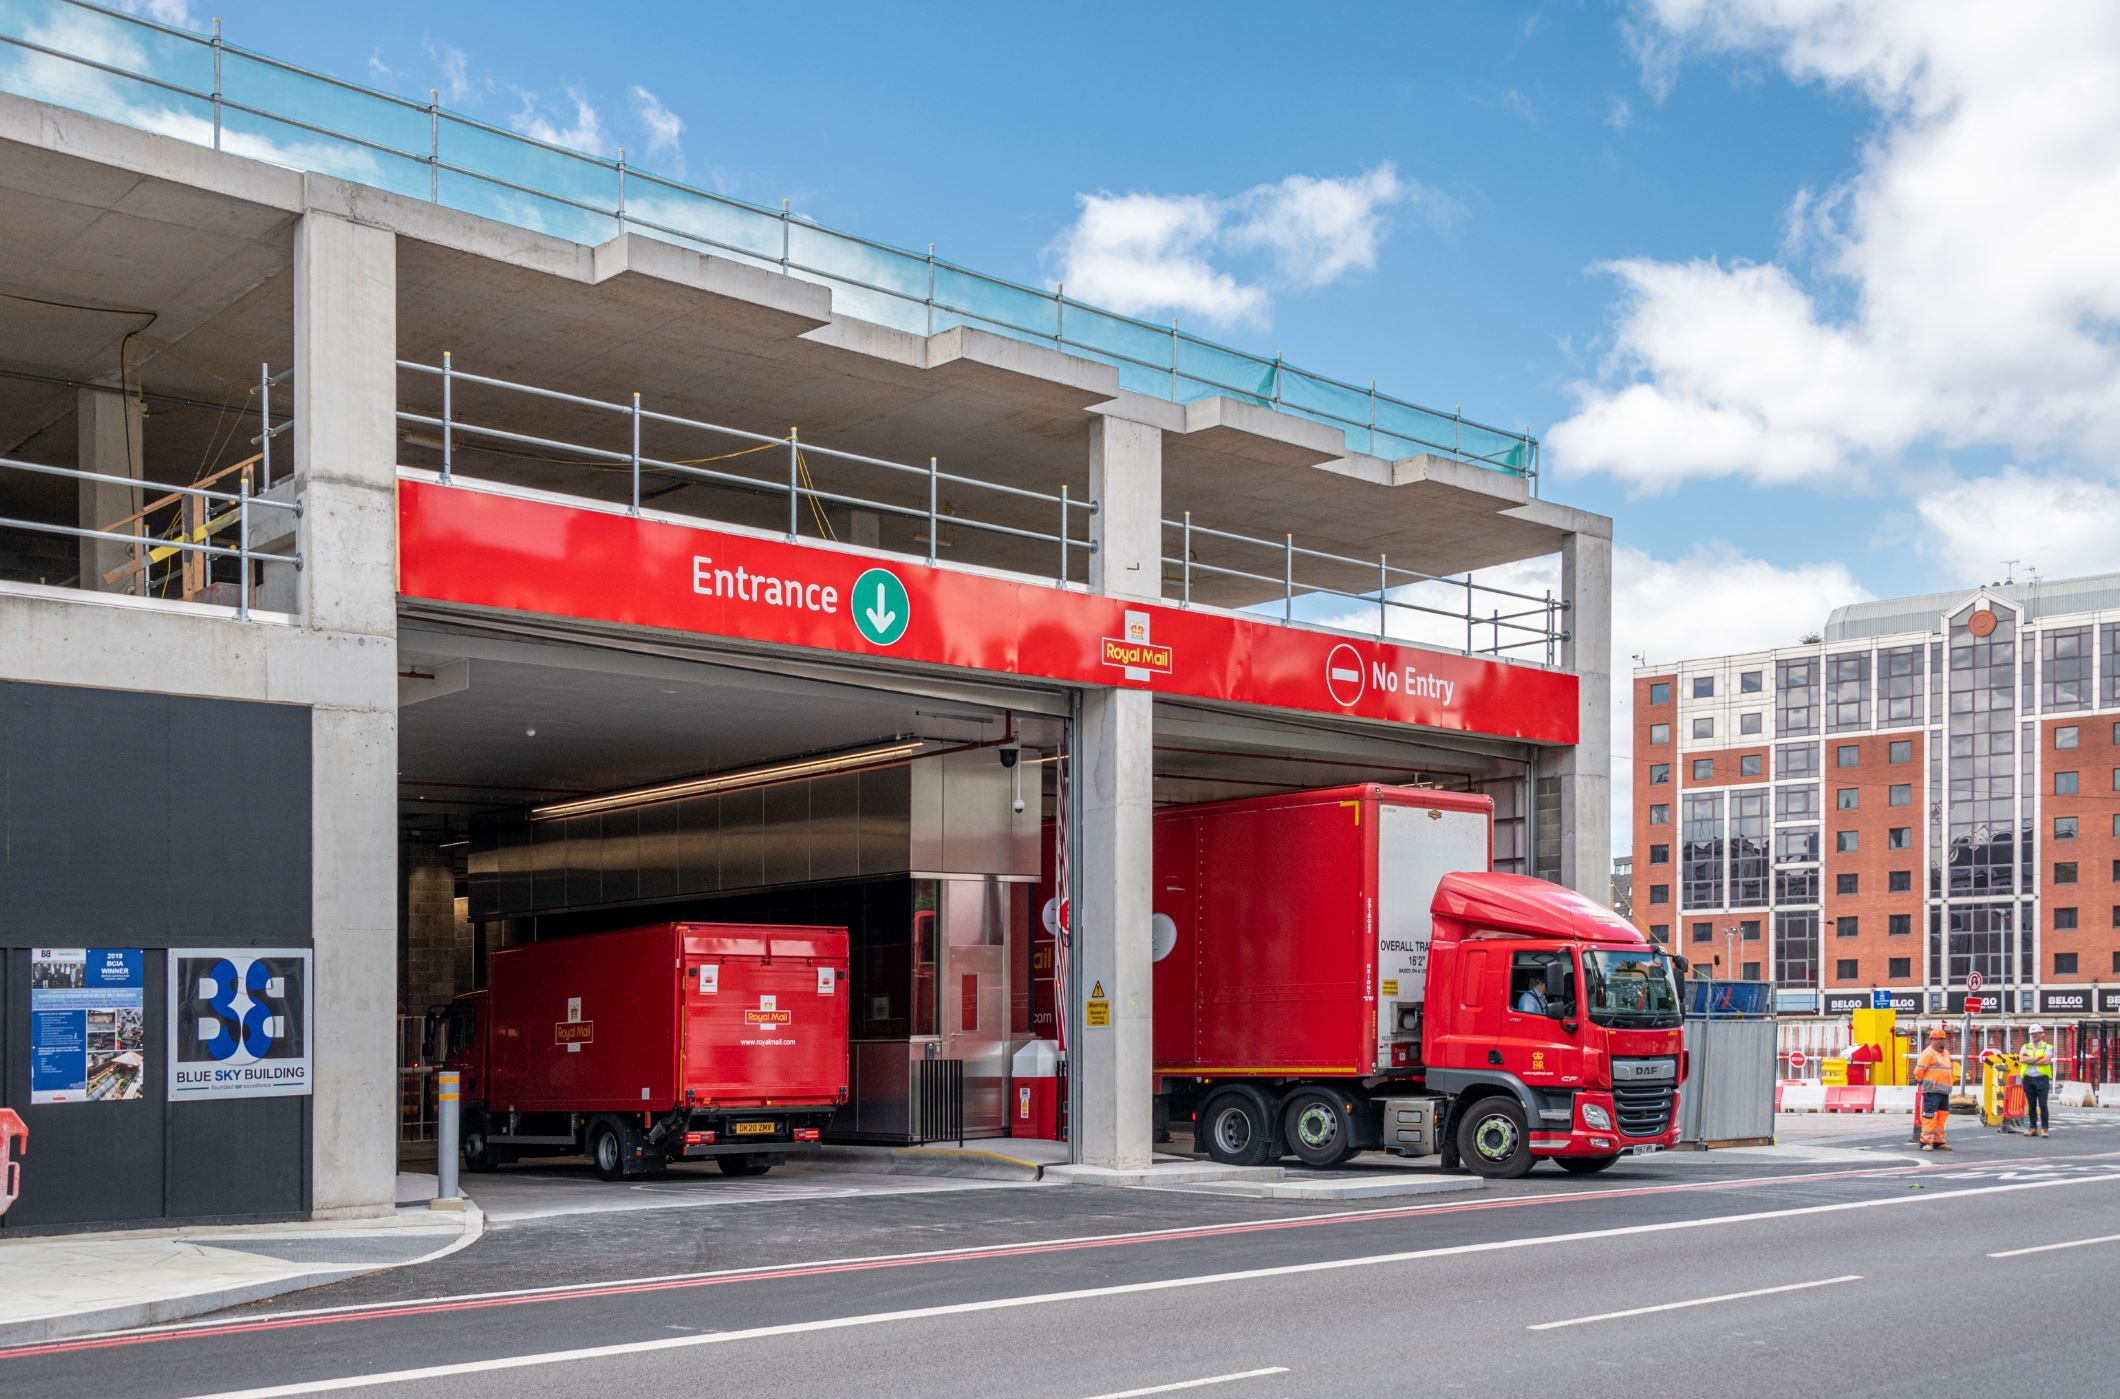 Chisholm & Winch Delivers Operationally Critical £9 Million Package for Royal Mail